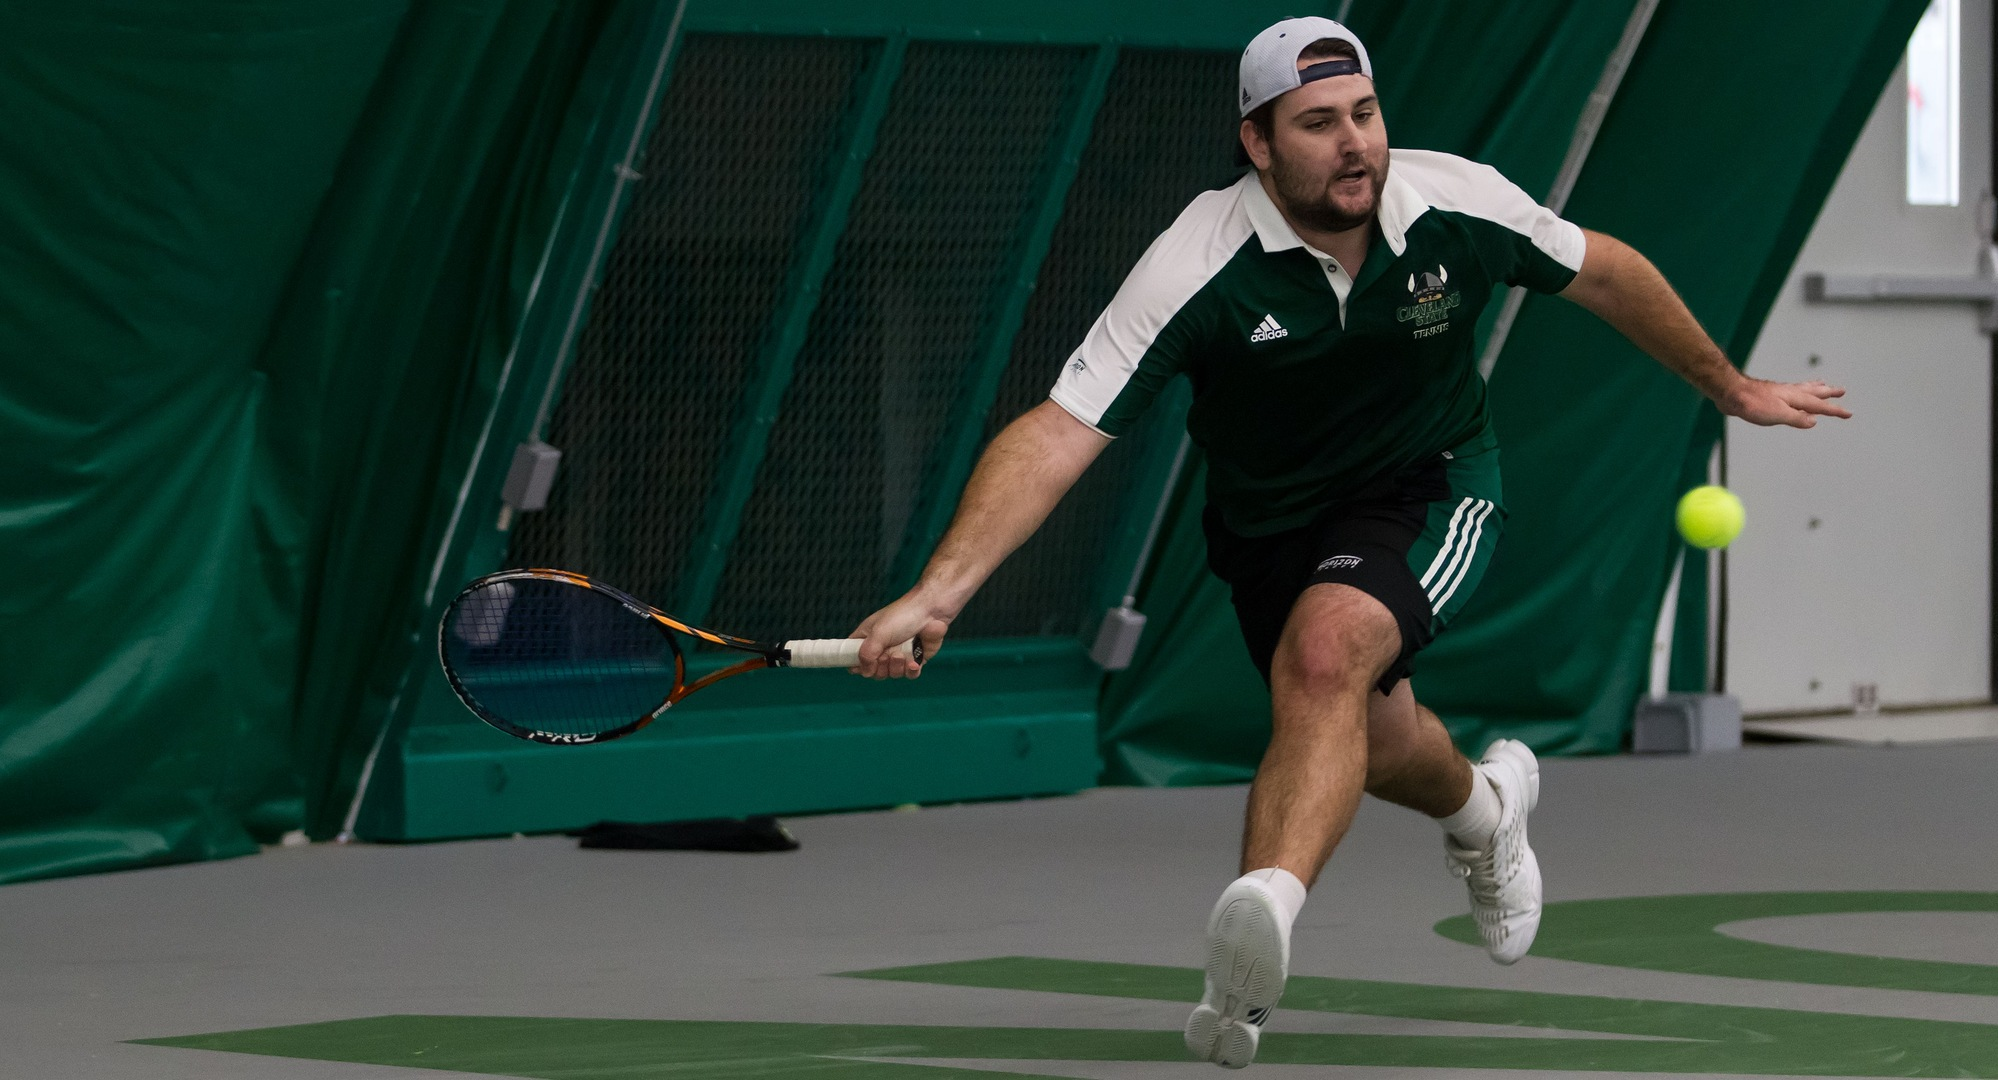 Vikings Begin Three-Match Roadswing At Youngstown State